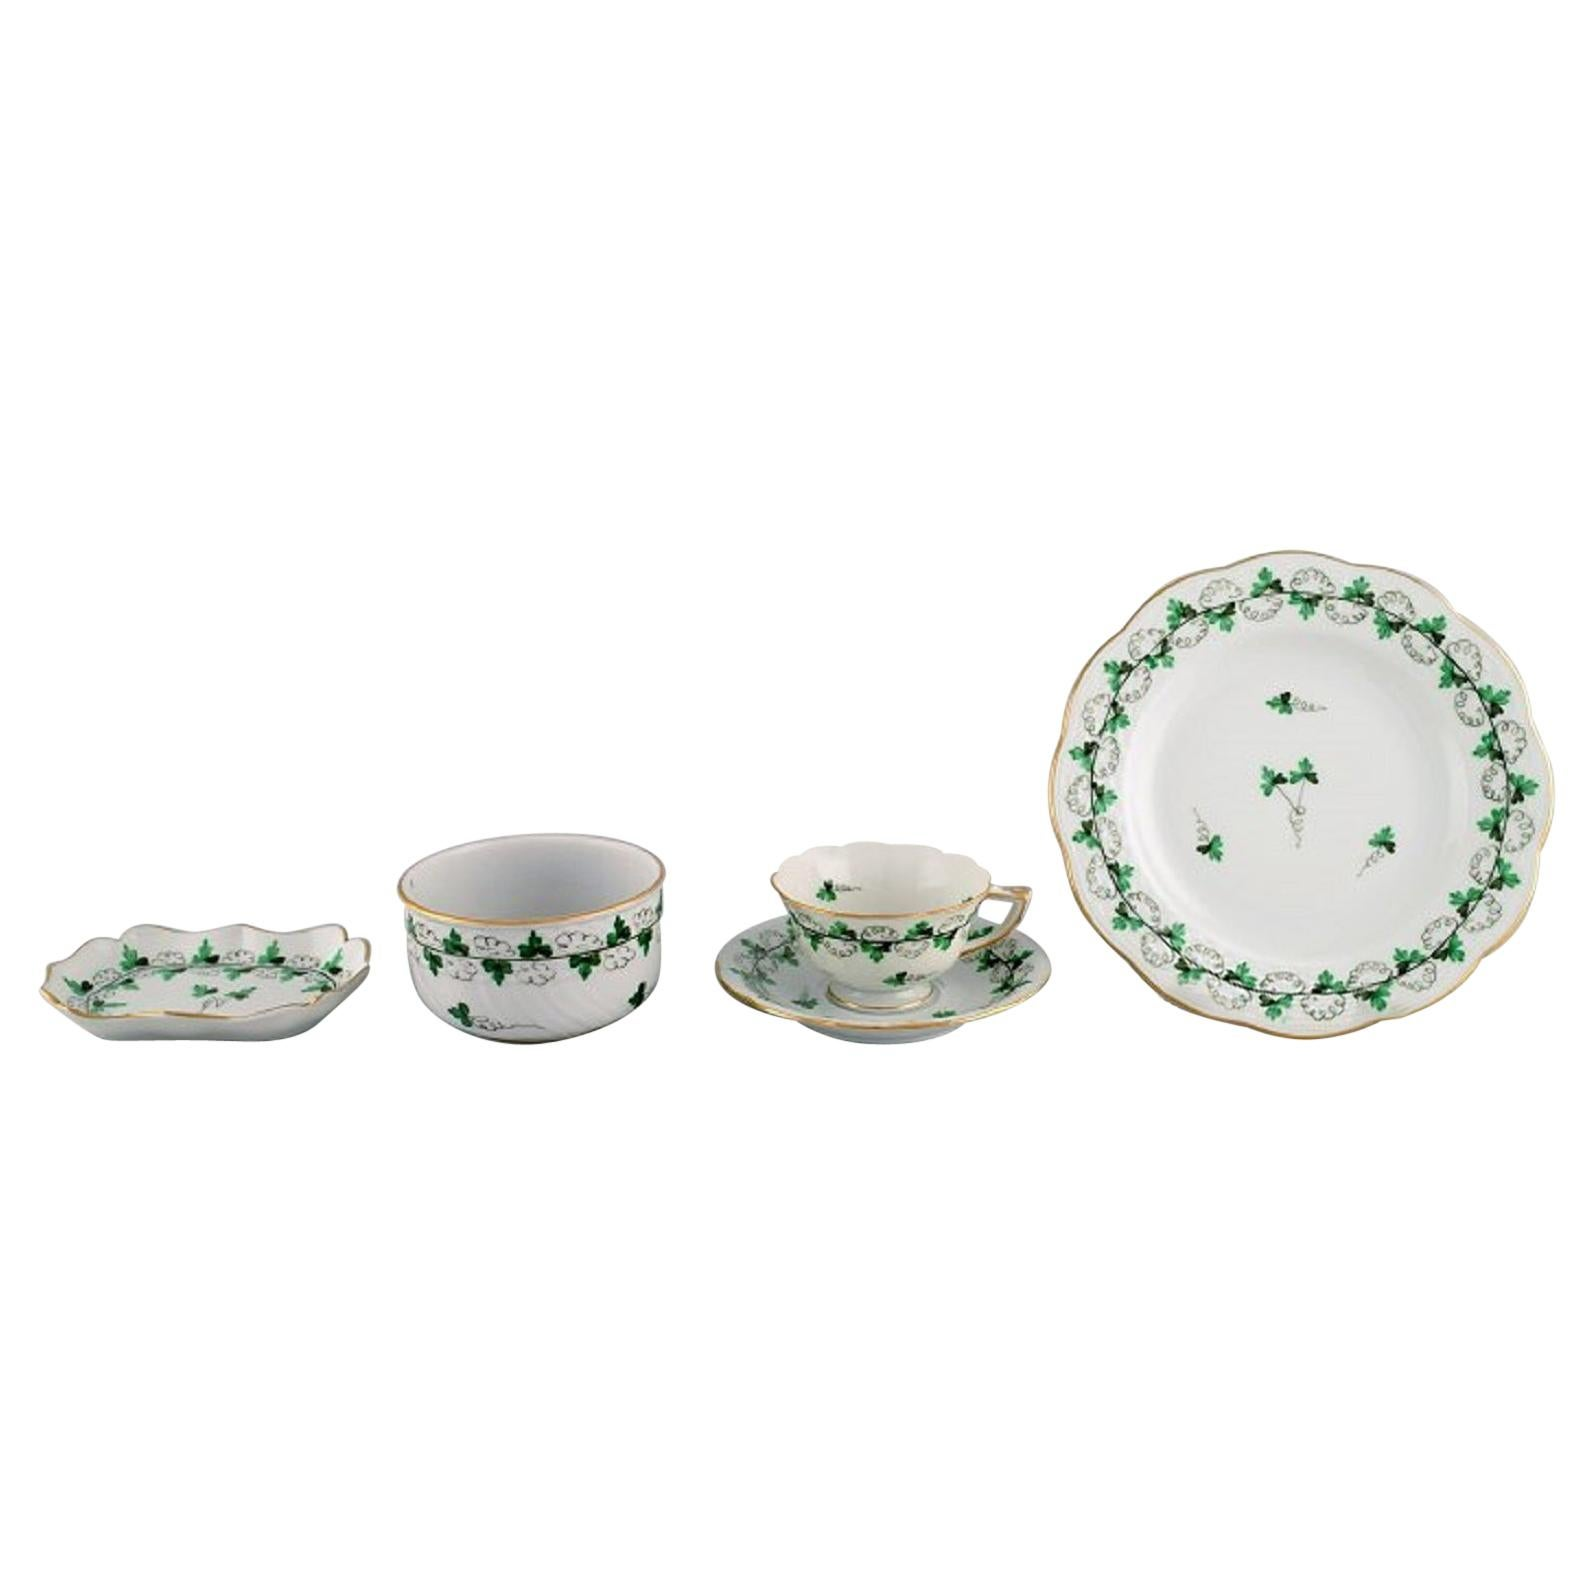 Herend Green Clover Egoist Coffee Service in Hand-Painted Porcelain